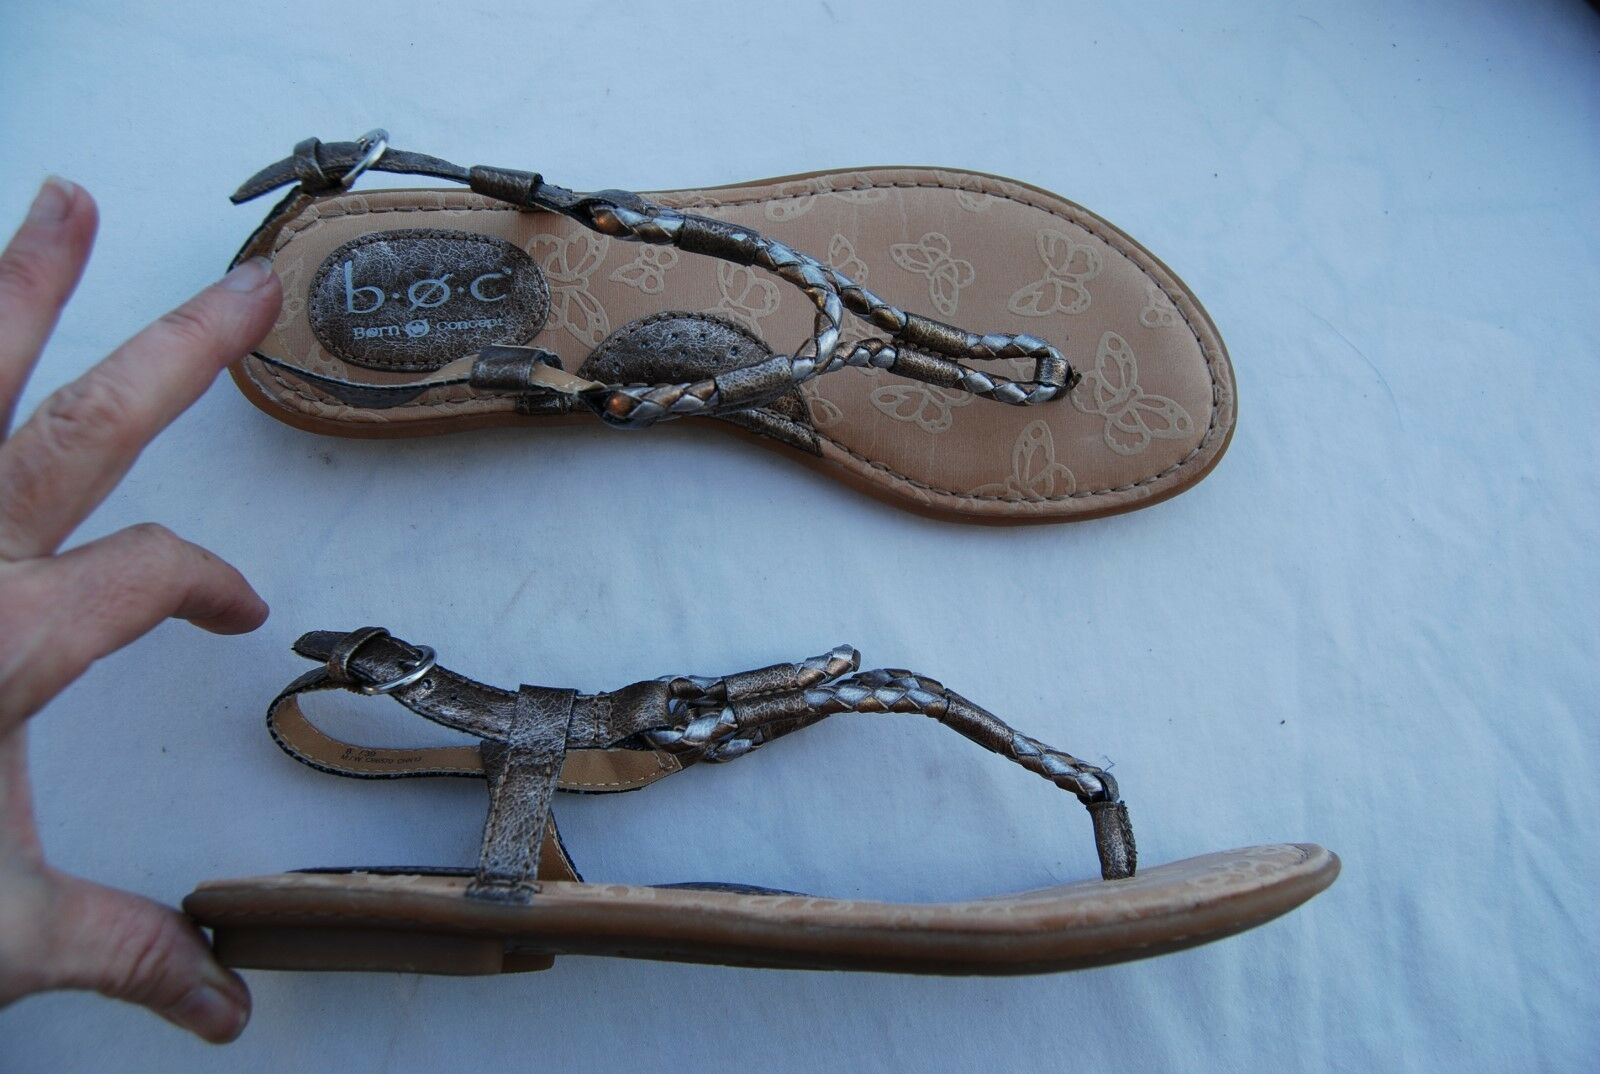 Silver & Bronzey Gold Faux B.O.C. Leather B.O.C. Faux Born Concept Thong Slingback Sandals 8 bce724